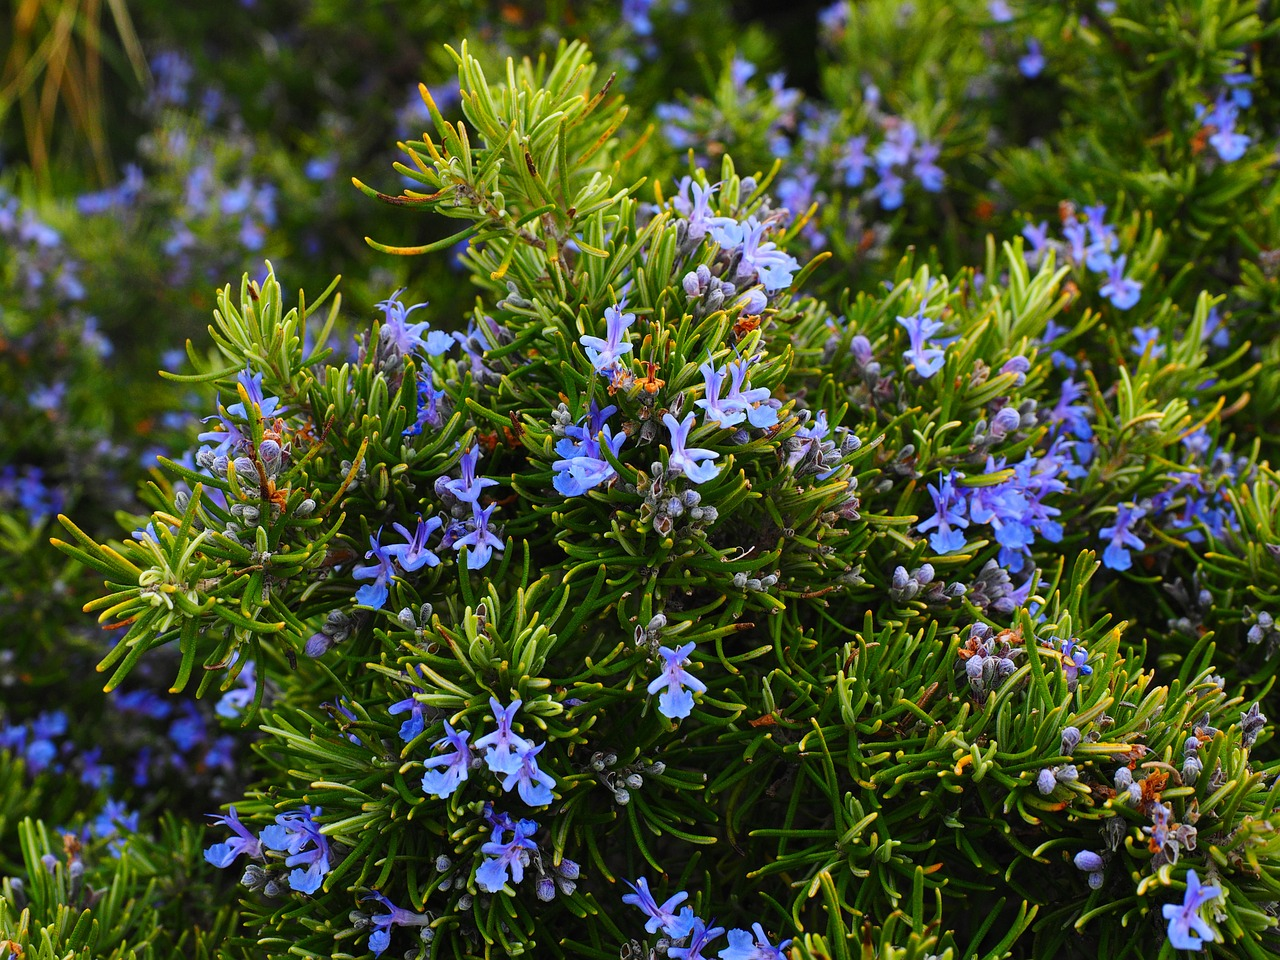 Image: One of the most esteemed herbs in the culinary world, rosemary is also a powerhouse in traditional medicine